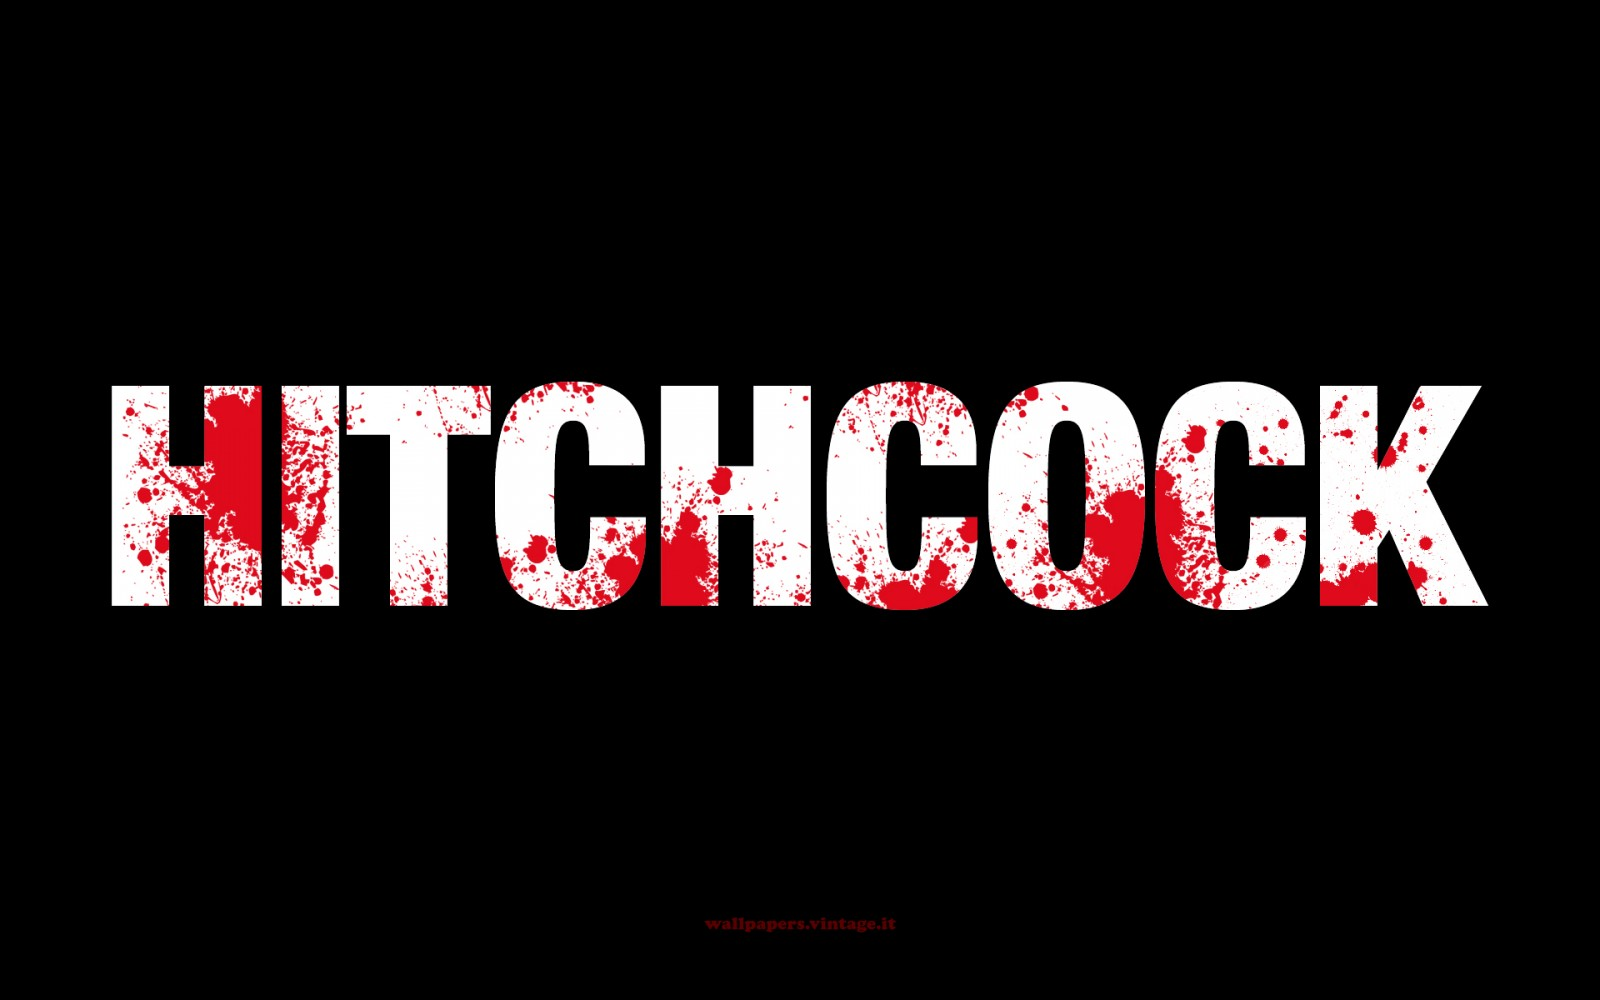 hitchcock -psicosis-wallpapers_20729_1920x1200